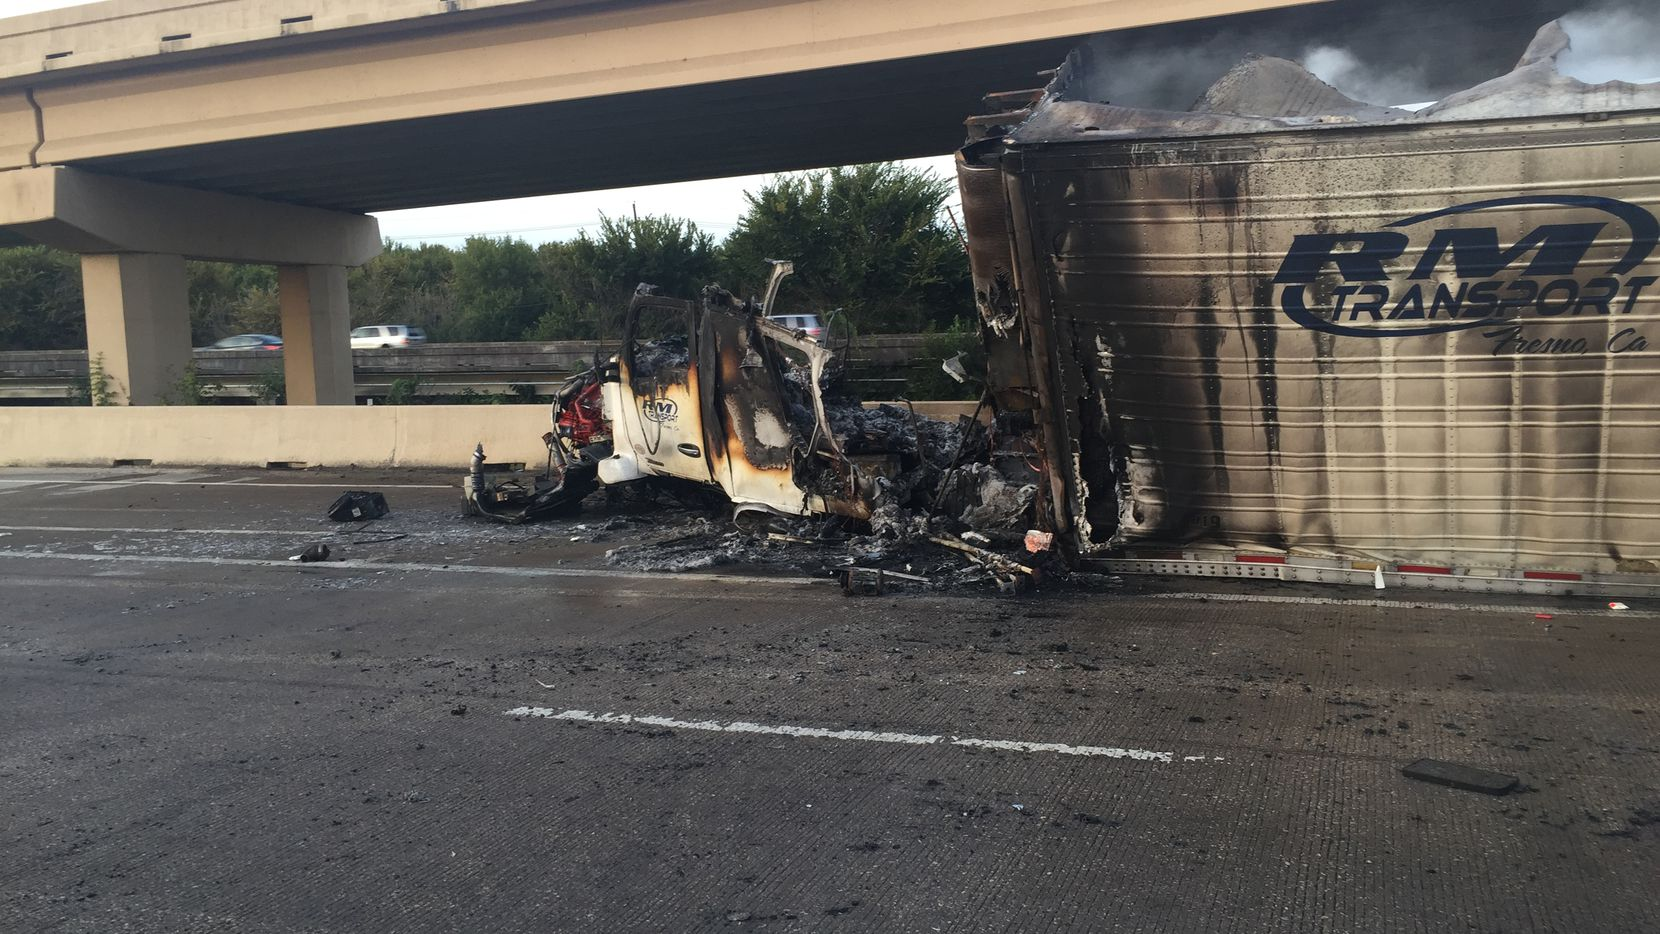 An 18-wheeler caught on fire after hitting the jersey wall on Interstate 35 near the exit to the President George Bush Turnpike in Lewisville.